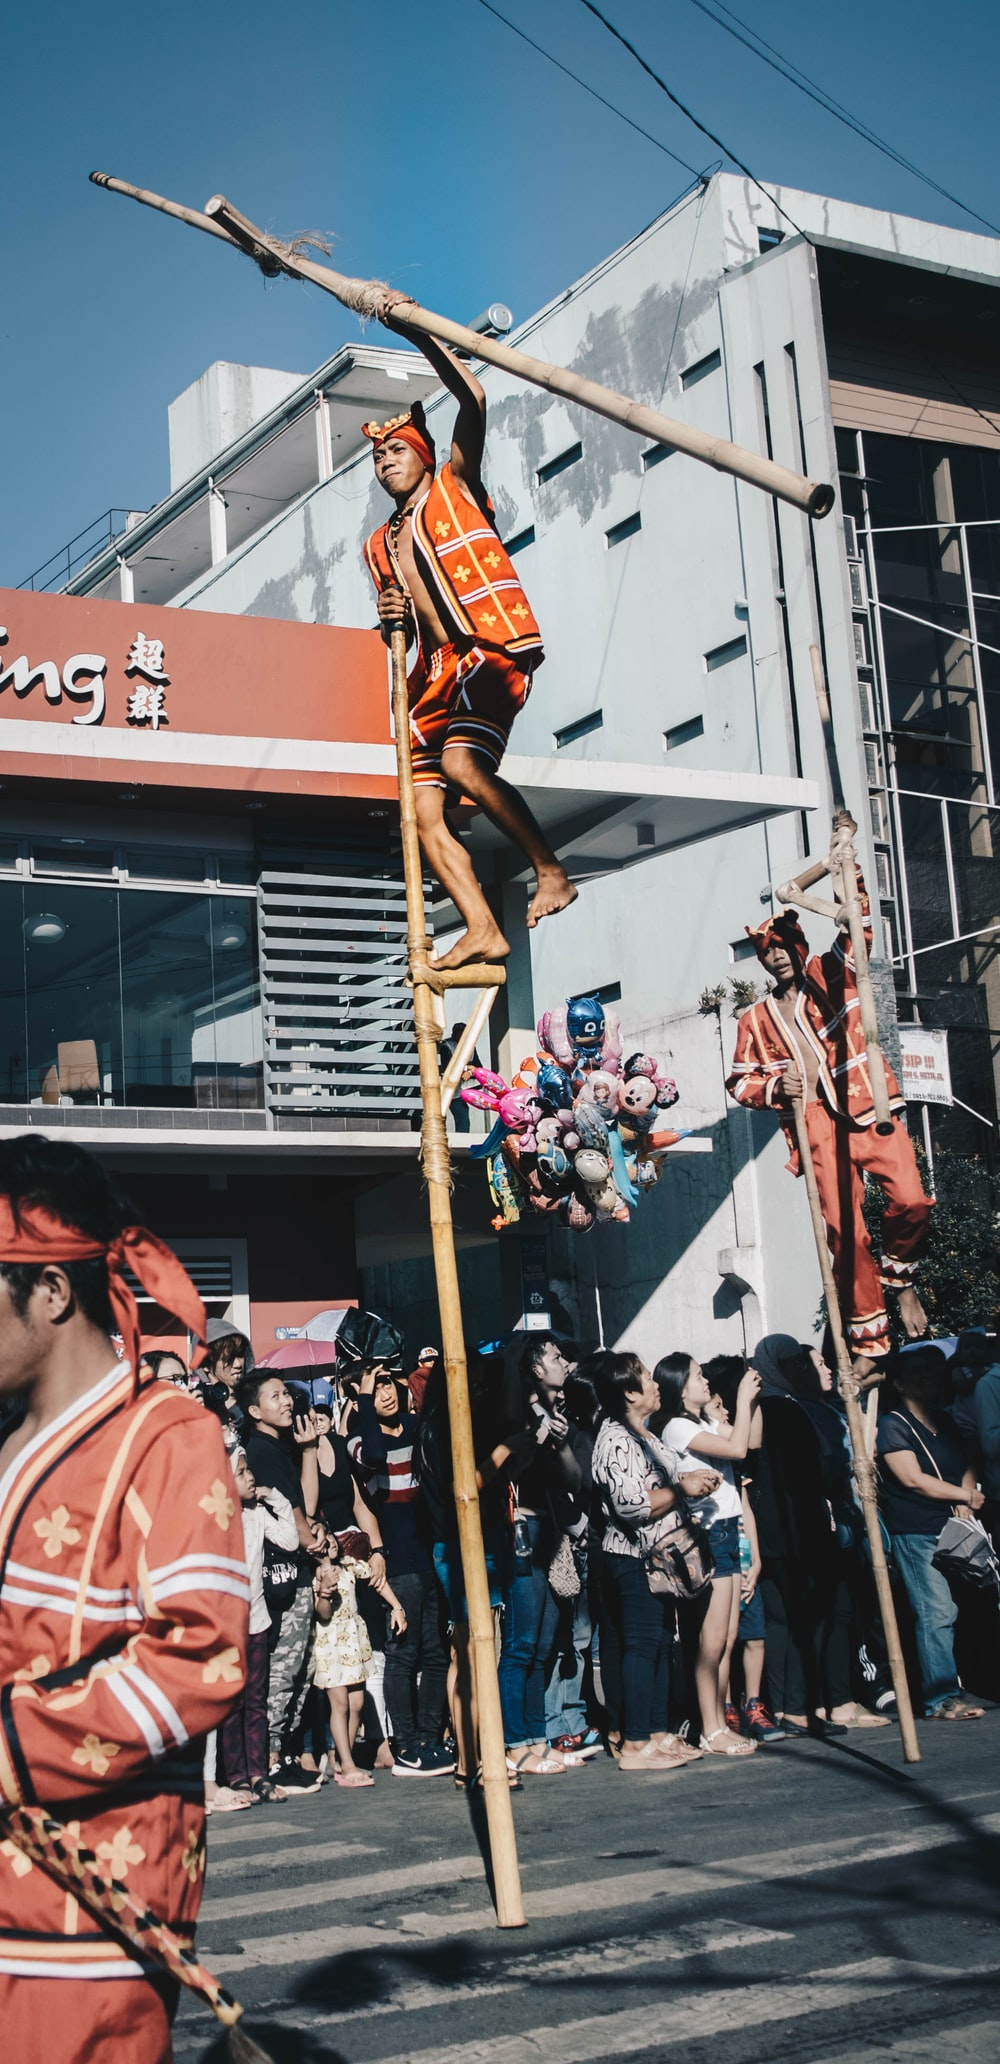 man in orange outfit standing on pole